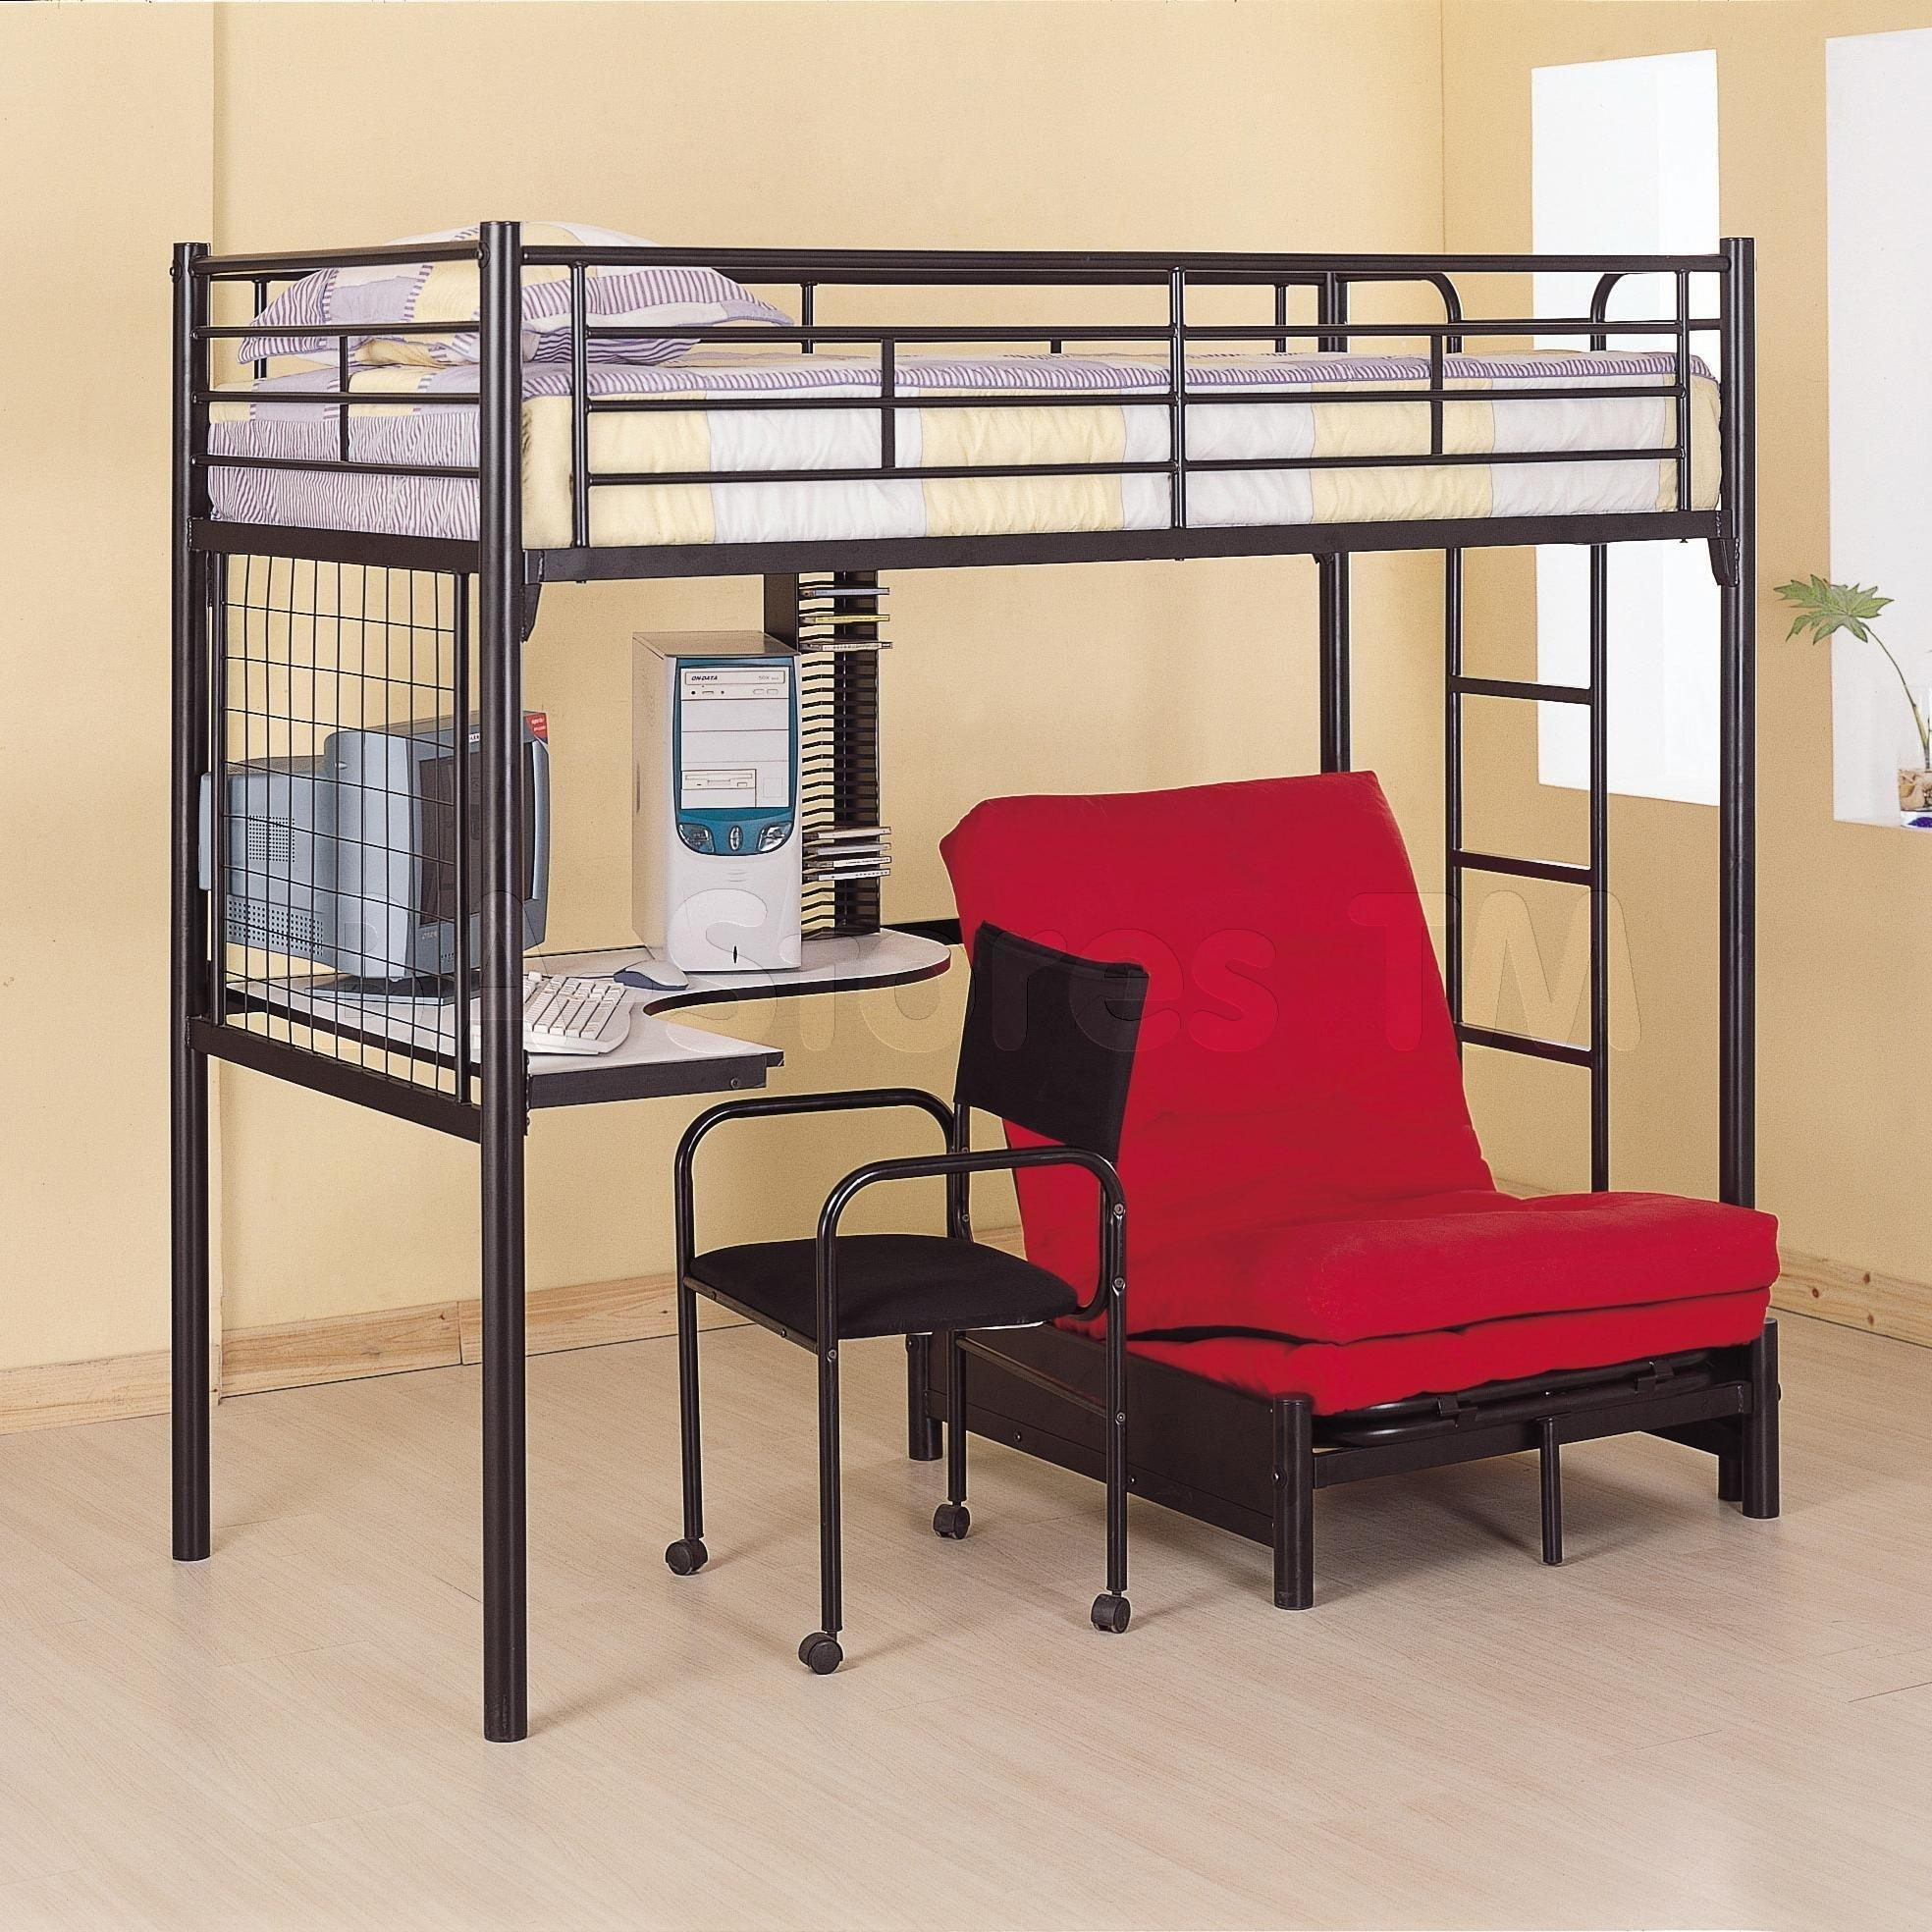 20 s Bunk Bed With Sofas Underneath